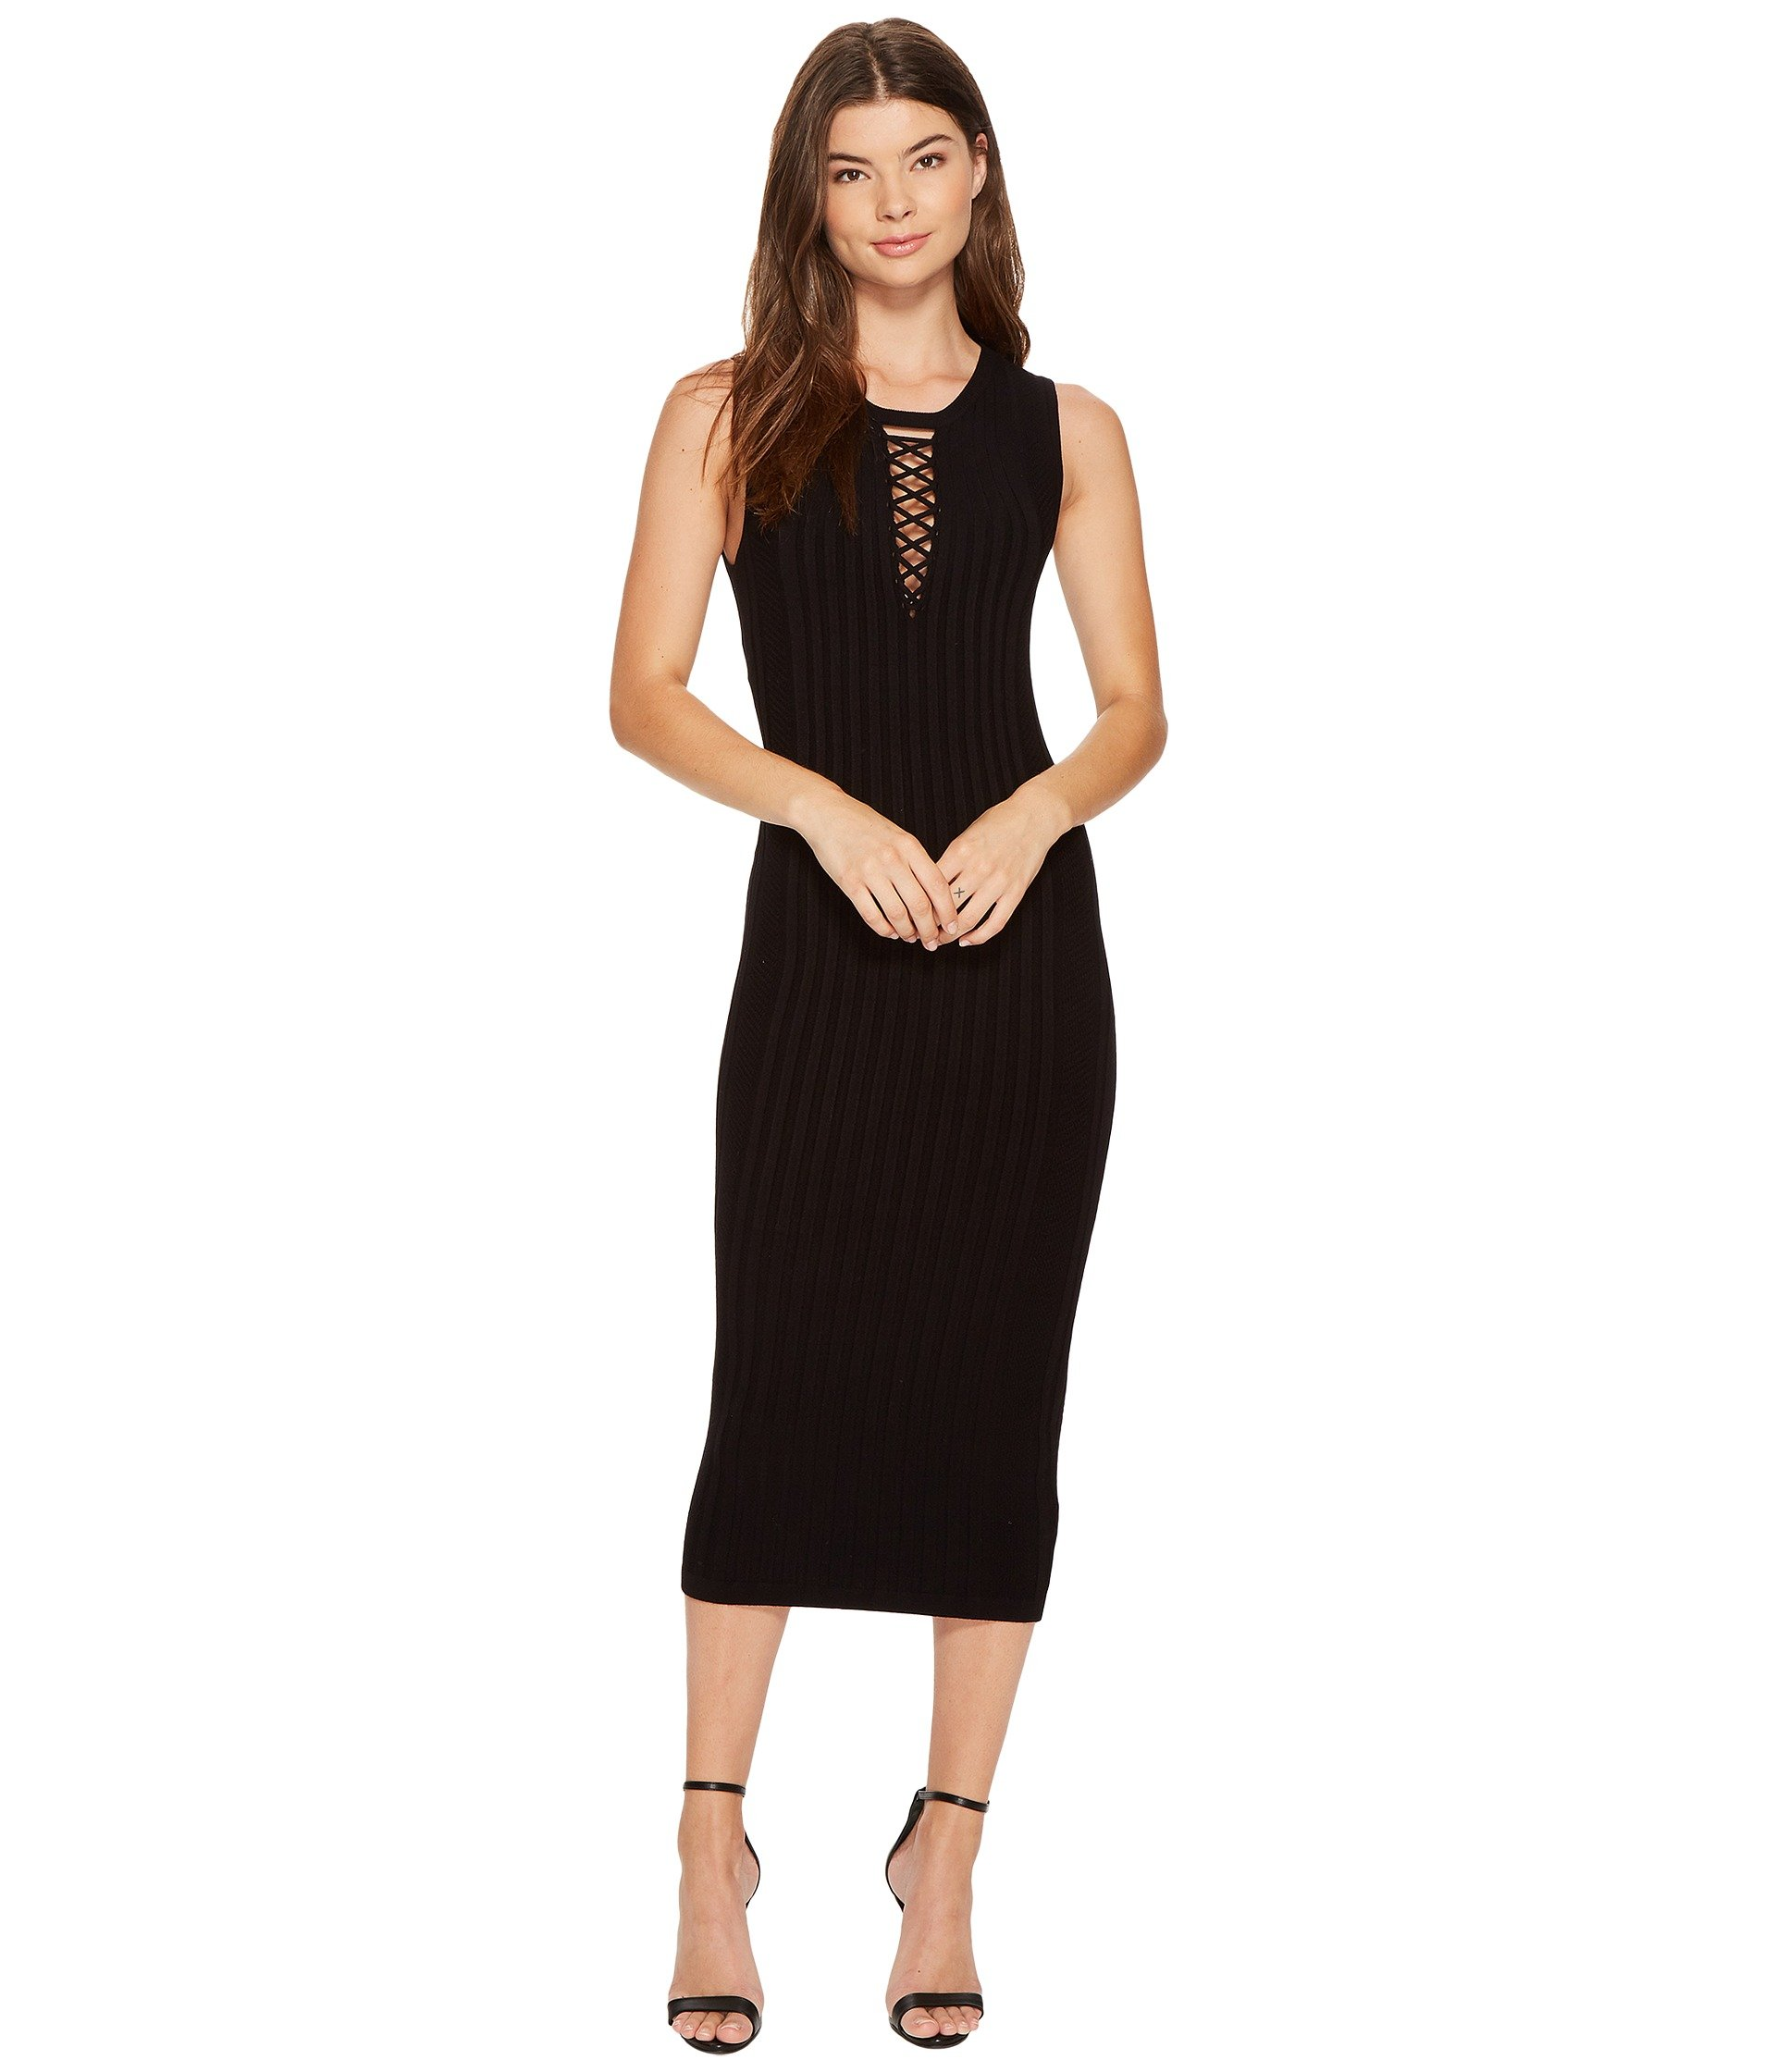 Vestido para Mujer XOXO Rib Stitch Lace-Up Midi Dress  + XOXO en VeoyCompro.net